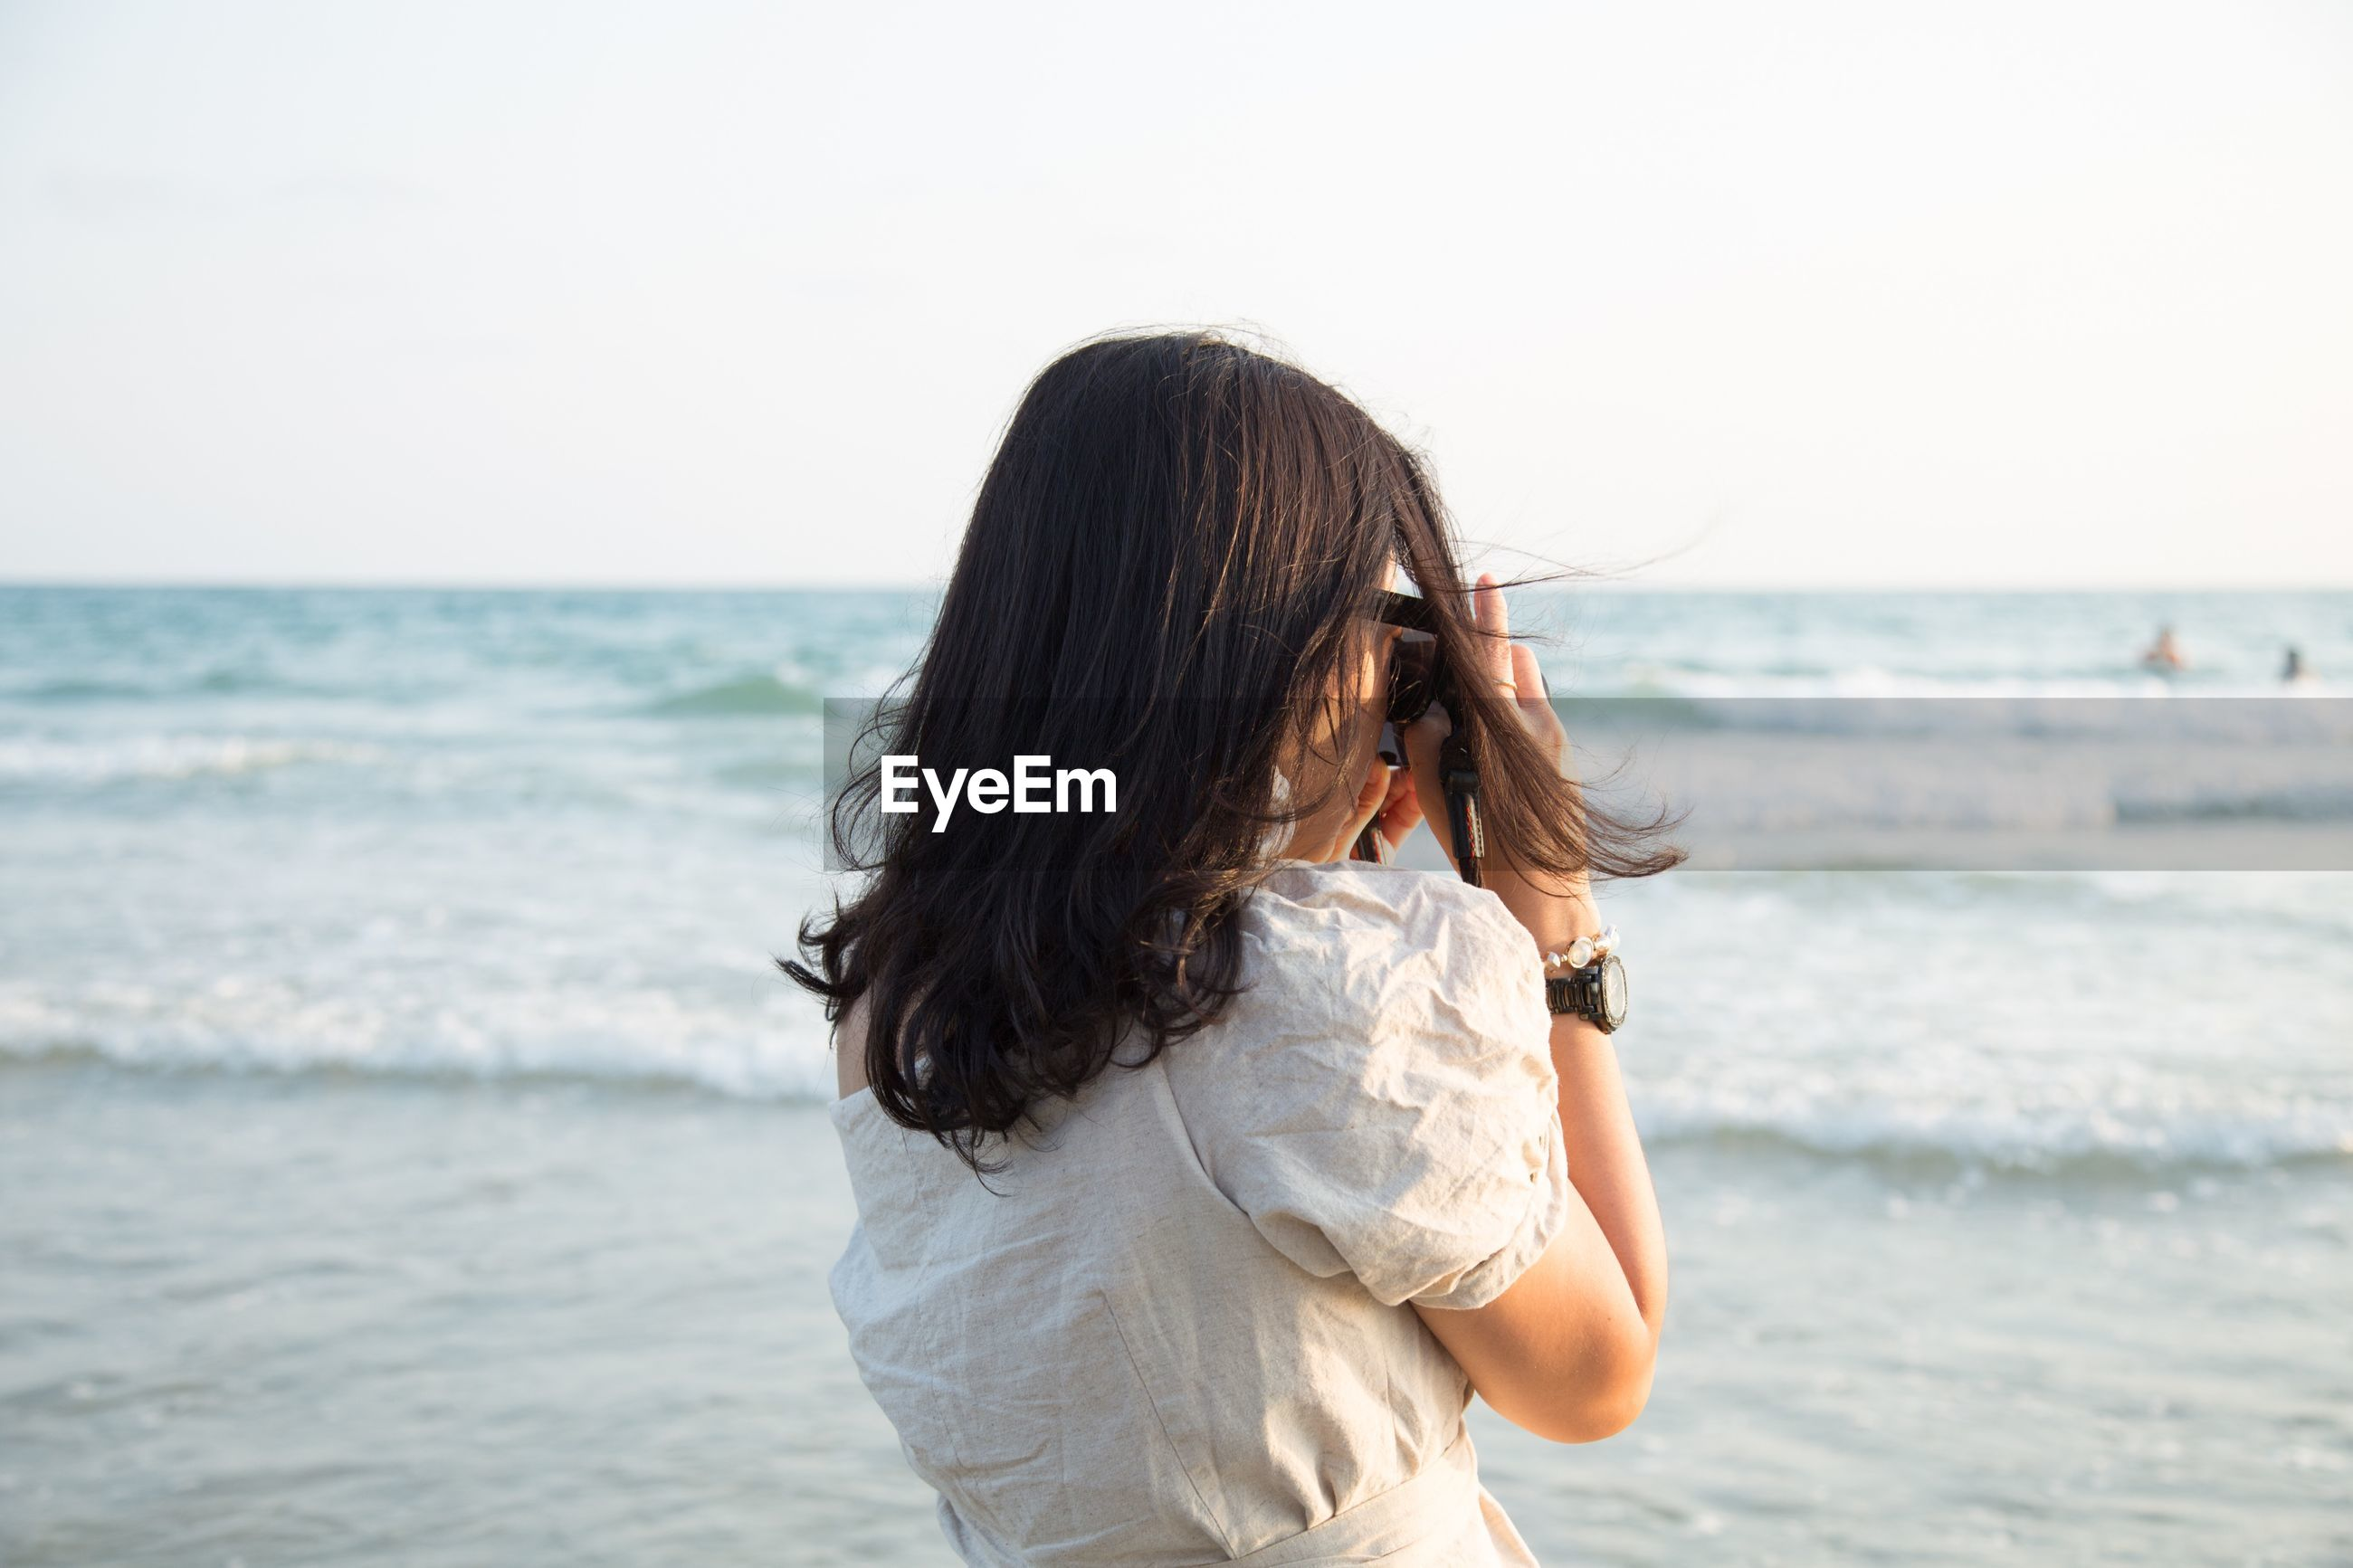 Woman photographing while standing at beach against sky